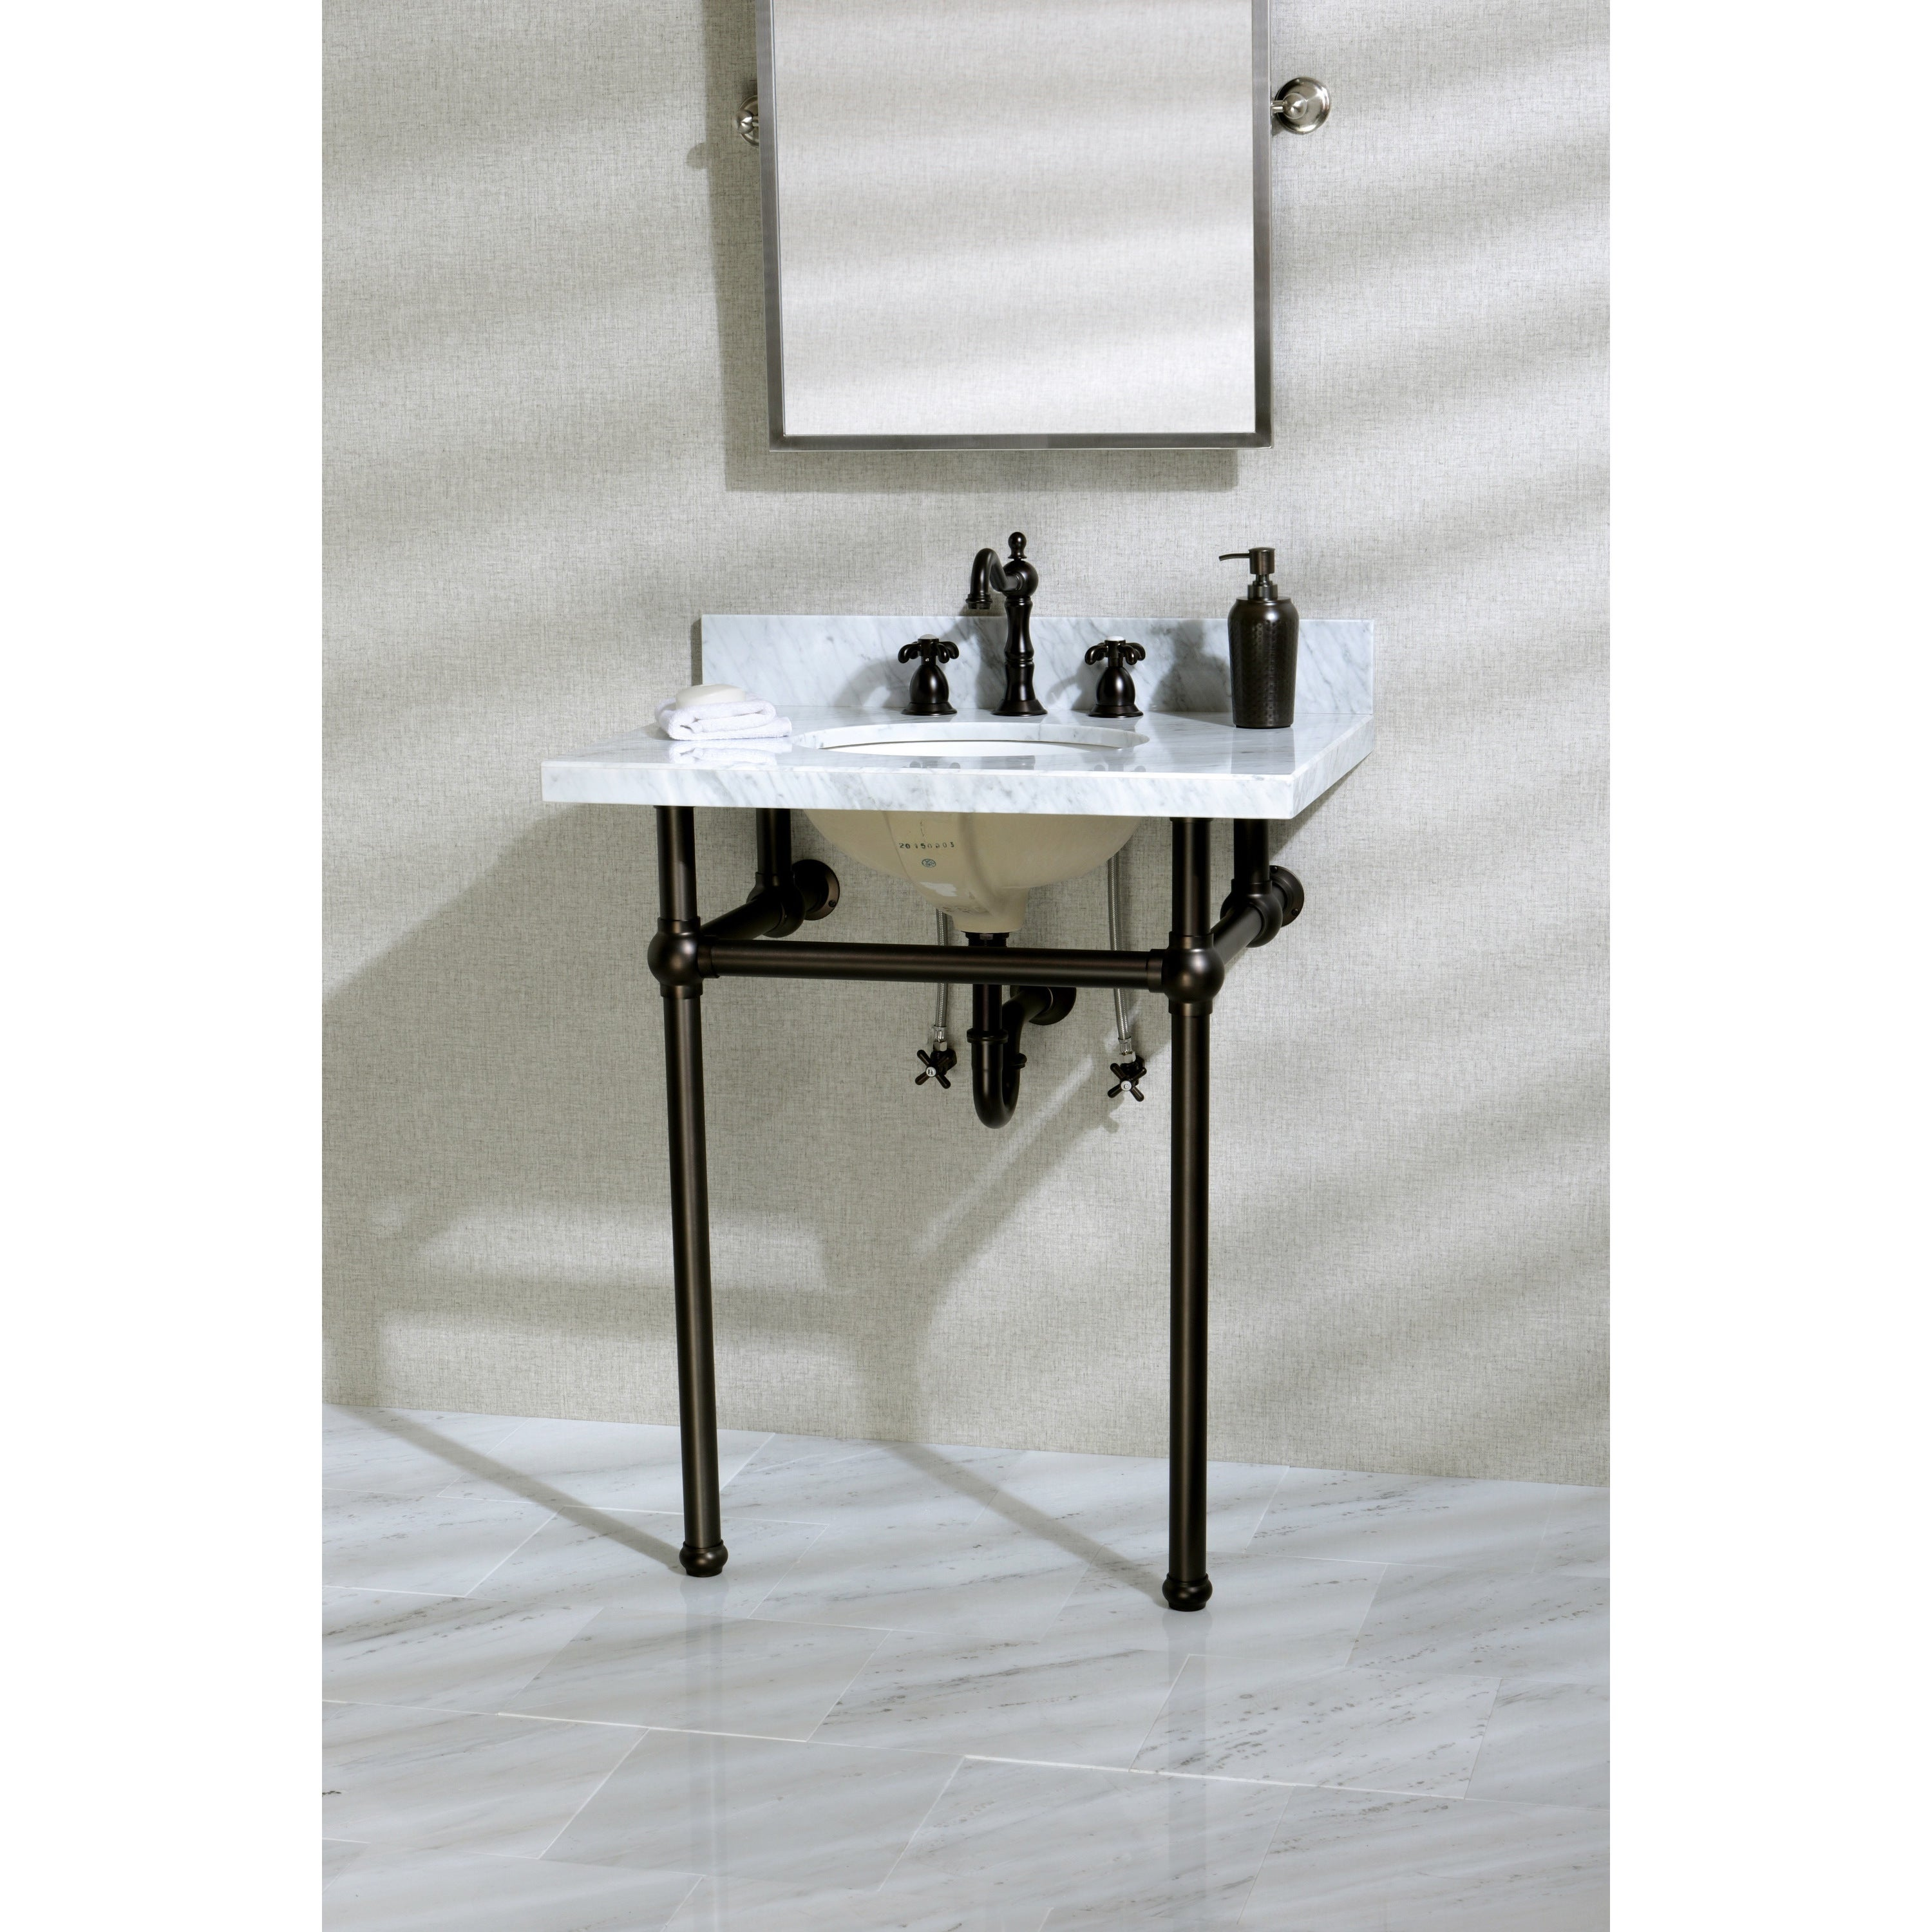 superb 30 Inch Console Sink Part - 3: Shop Vintage Carrara Marble 30-inch Console Sink and Metal Stand - Free  Shipping Today - Overstock.com - 11623869